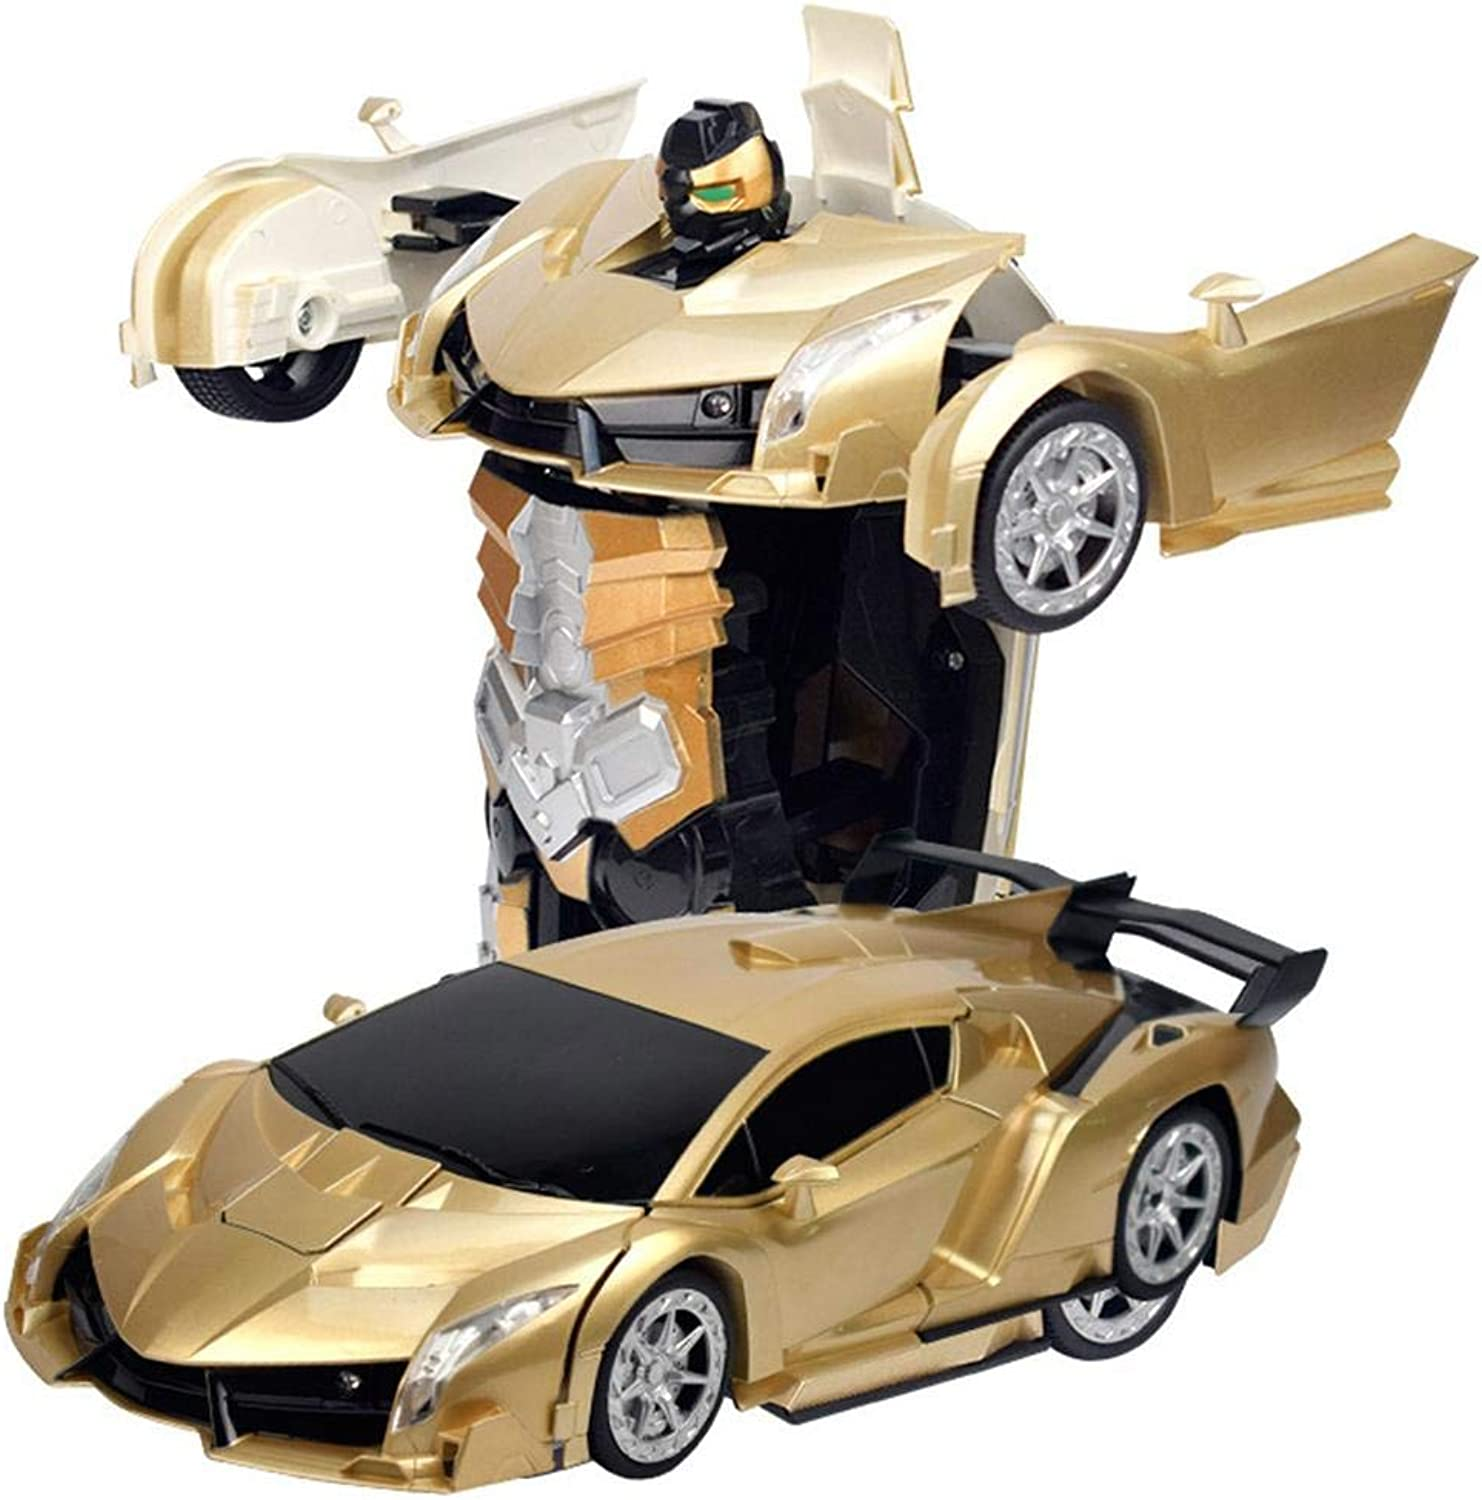 Coaste 1 12 Deformed Vehicle Remote Control Vehicle,Transform Car Robot Toy,One Button Transformation,Two color to Choose(gold and pink gold),for Kids and Toddlers.